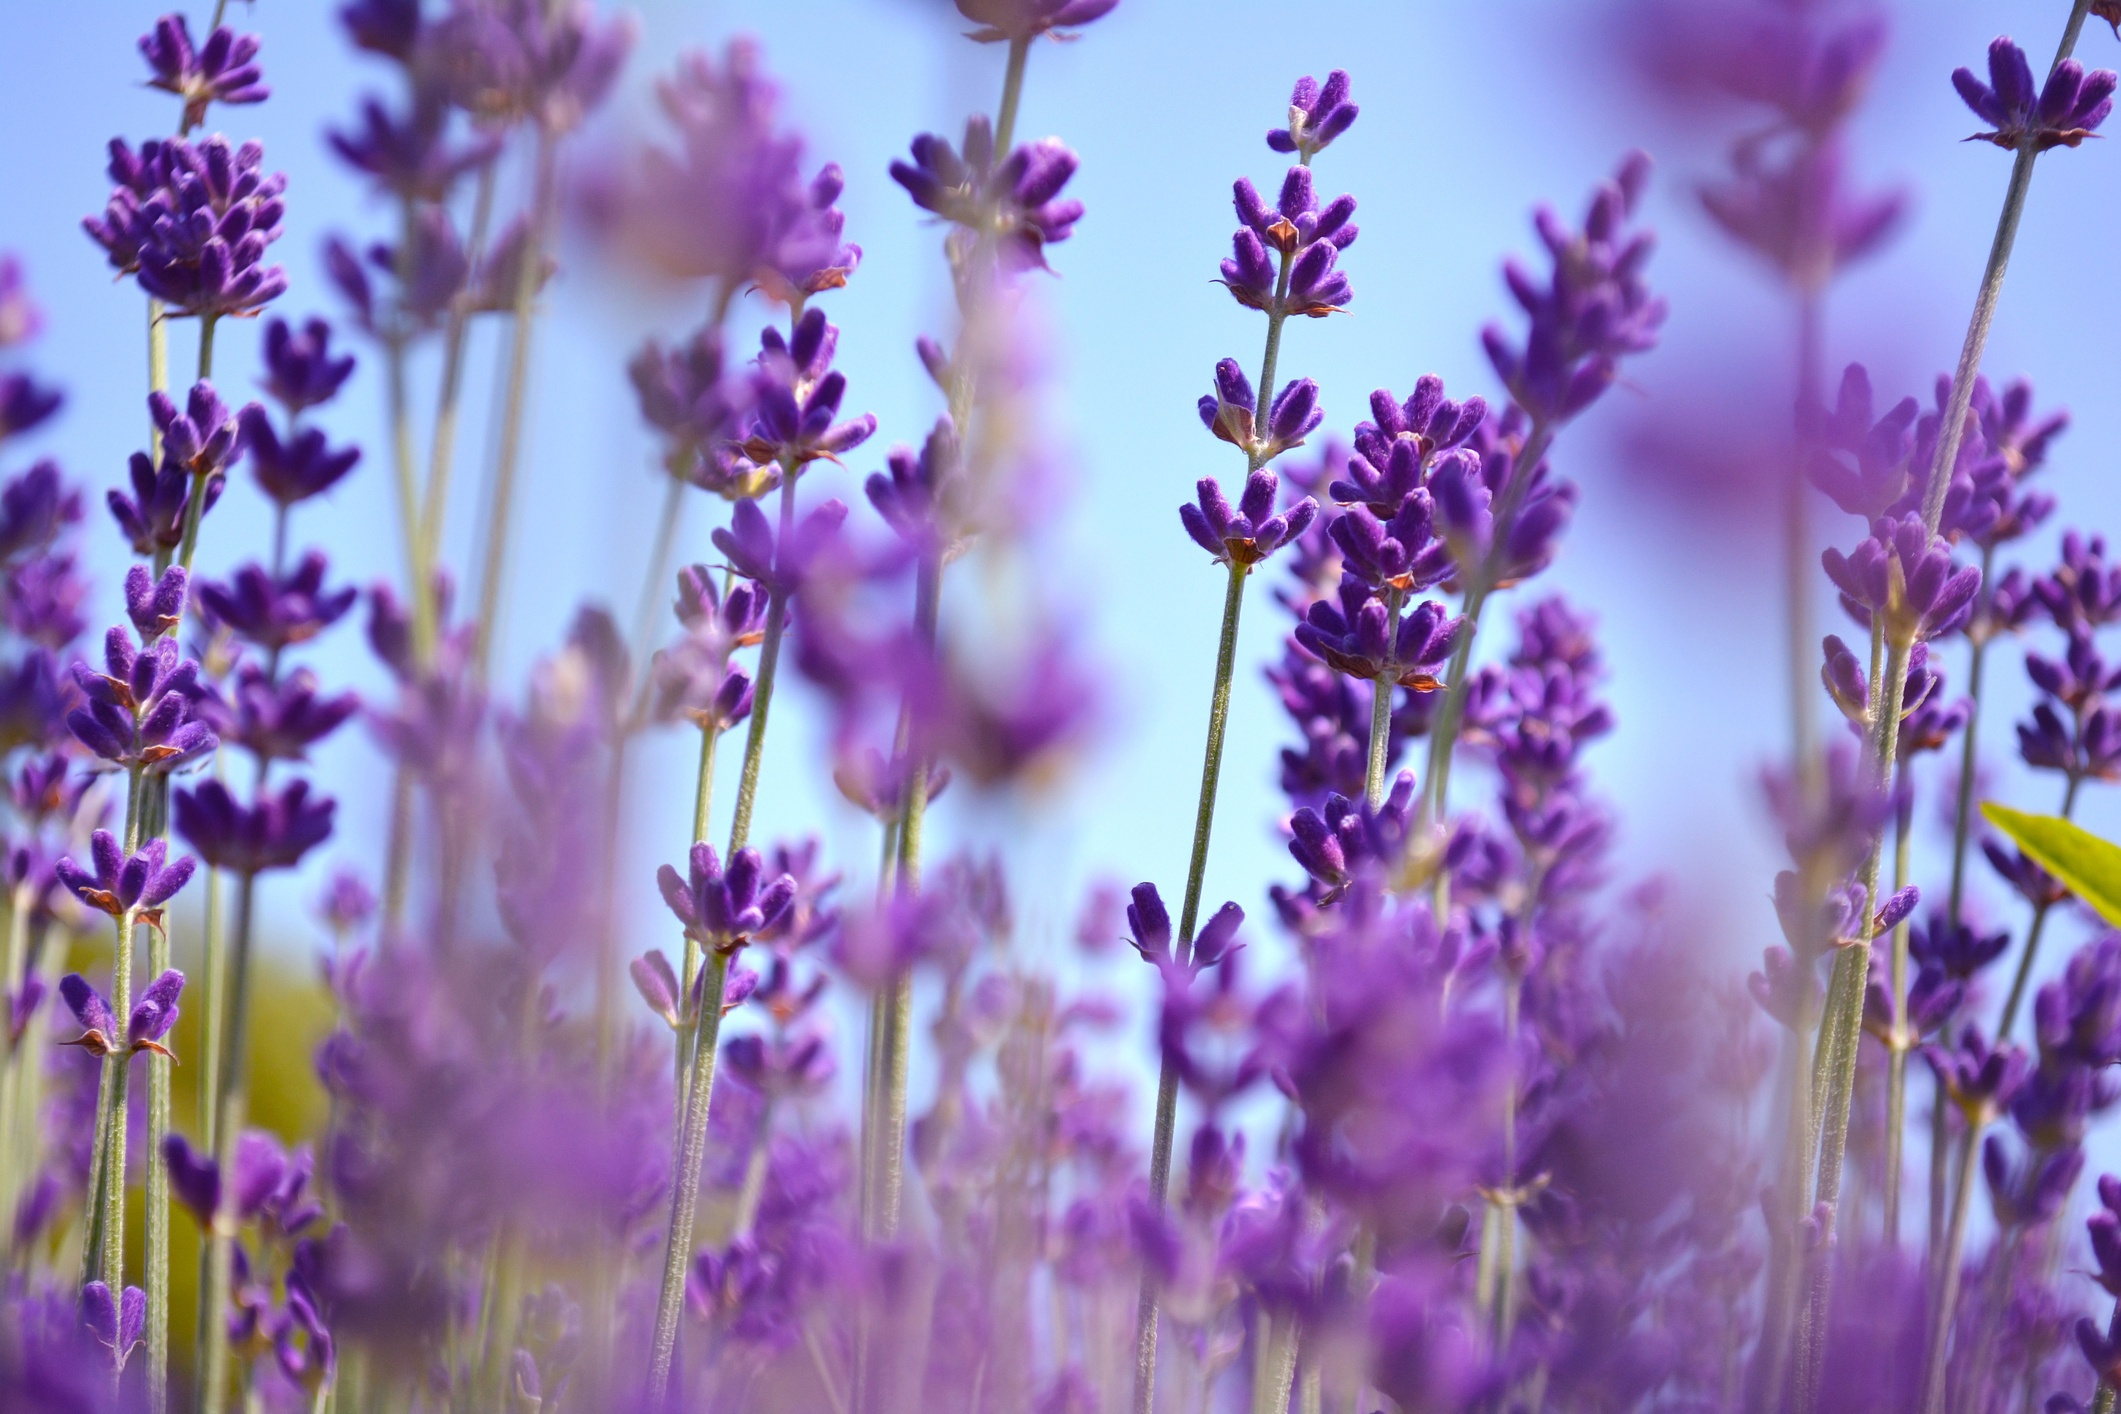 Lavenders-flowers.-Ontario,-Canada,-Prince-Edward-Country.-821751490_2125x1416.jpeg